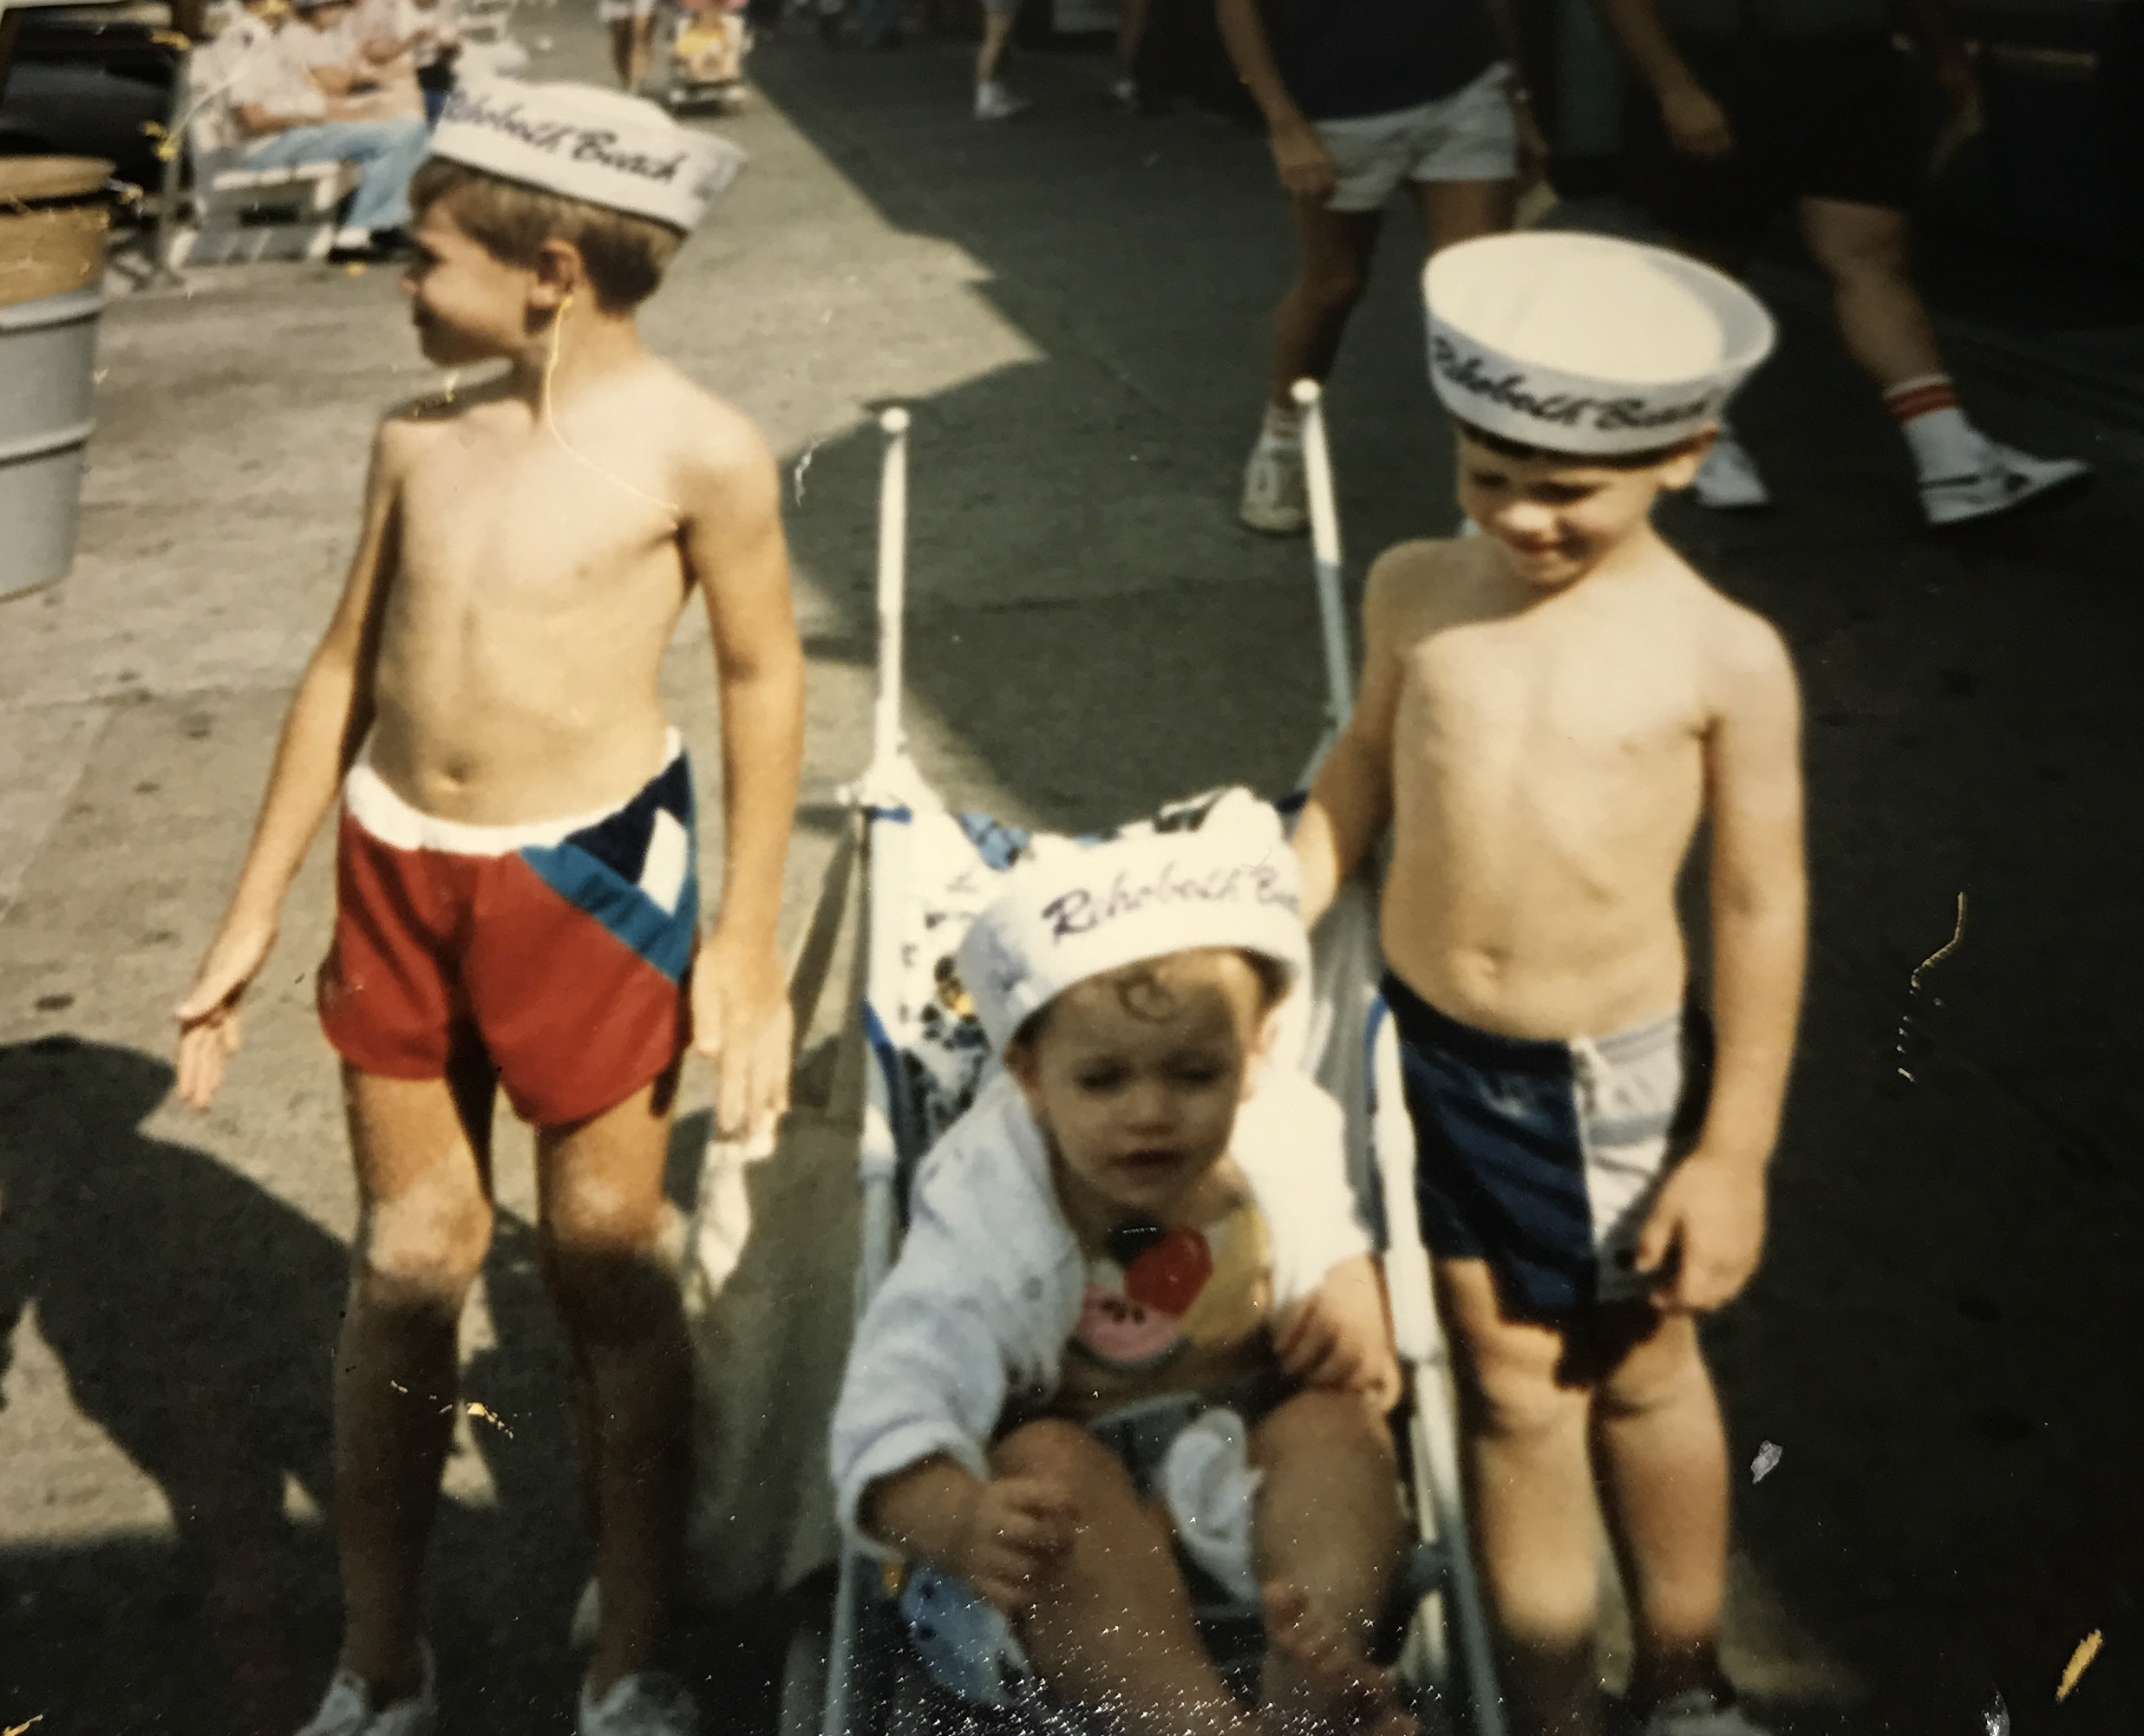 My older brother, my little sister and myself in our matching Rehoboth beach sailor hats.